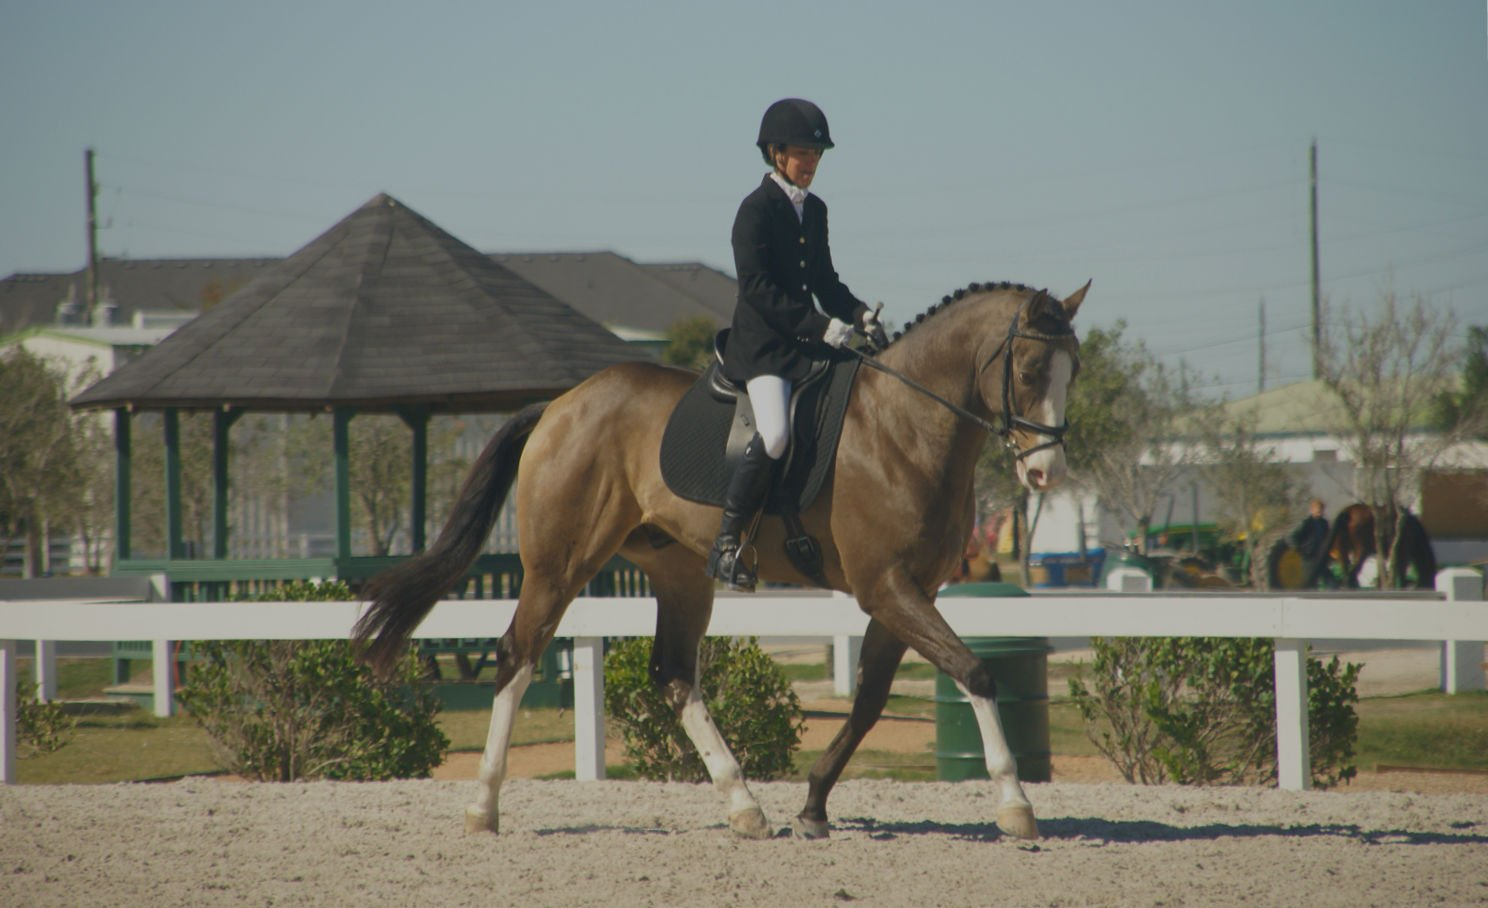 Banner of buckskin colored horse in dressage tack with rider in show attire in an outdoor warmup arena at a show